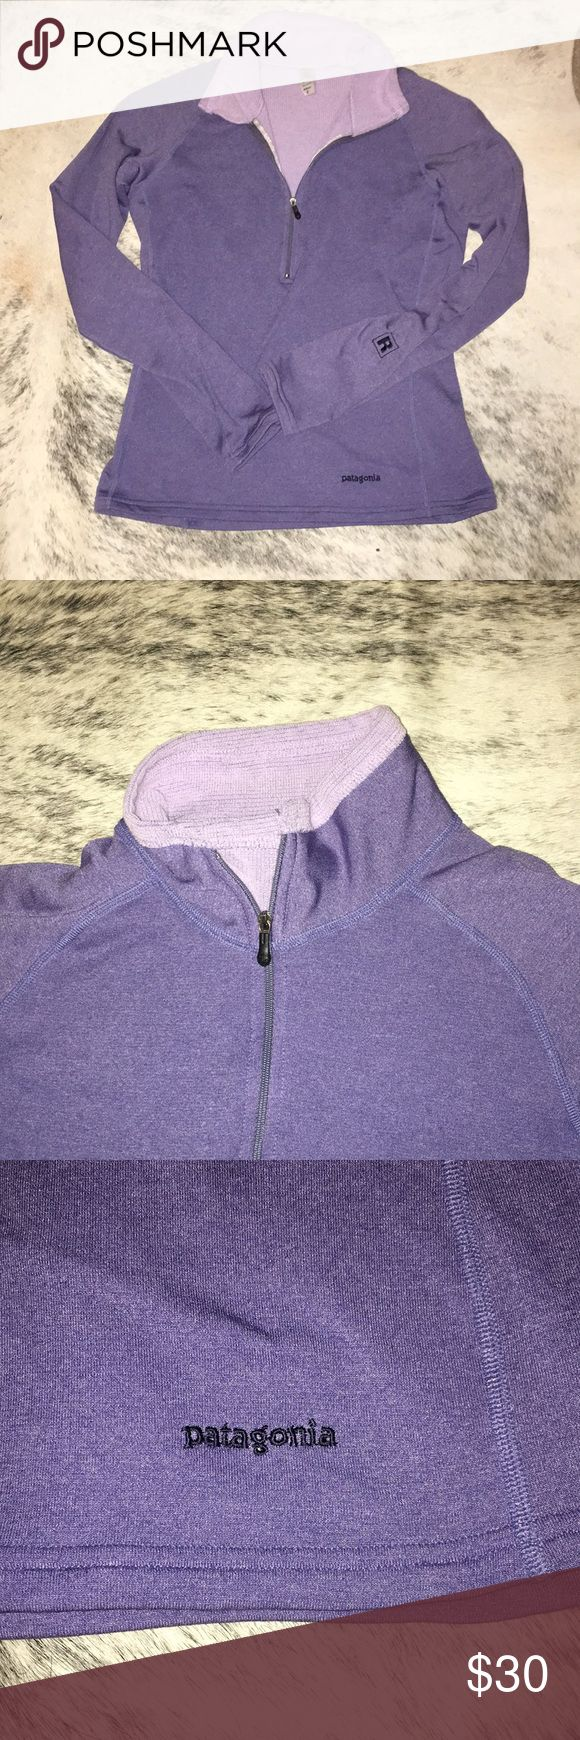 "Patagonia Quarter Zip Purple Pullover Small Purple Patagonia quarter zip Pullover. Women's small. Good used condition. HAS MONOGRAMED ""R"" ON ONE SLEEVE. See photos. Patagonia Tops Sweatshirts & Hoodies"